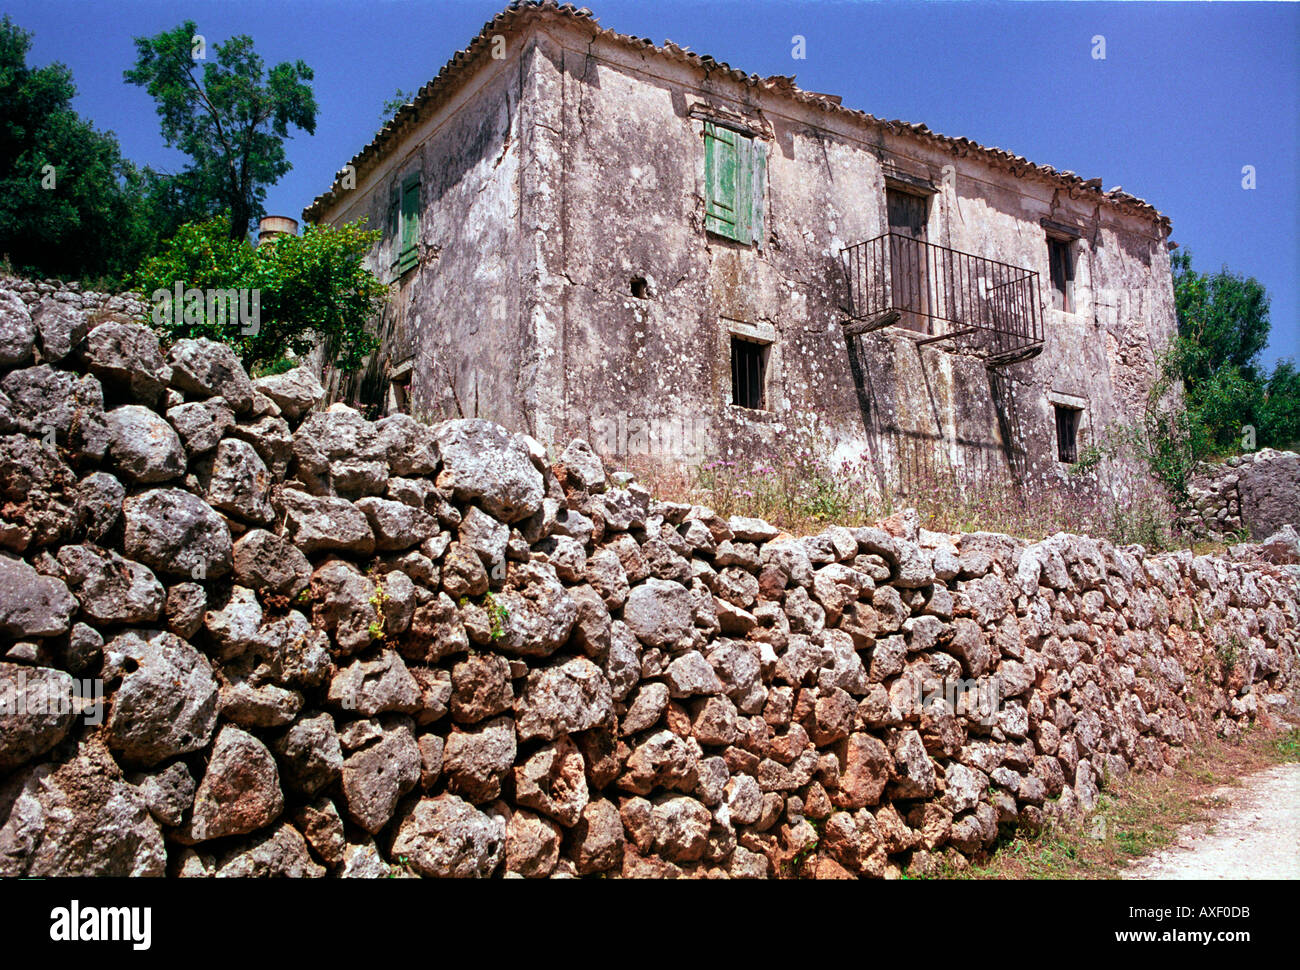 Old stone house with stonewall on Kefalonia. - Stock Image